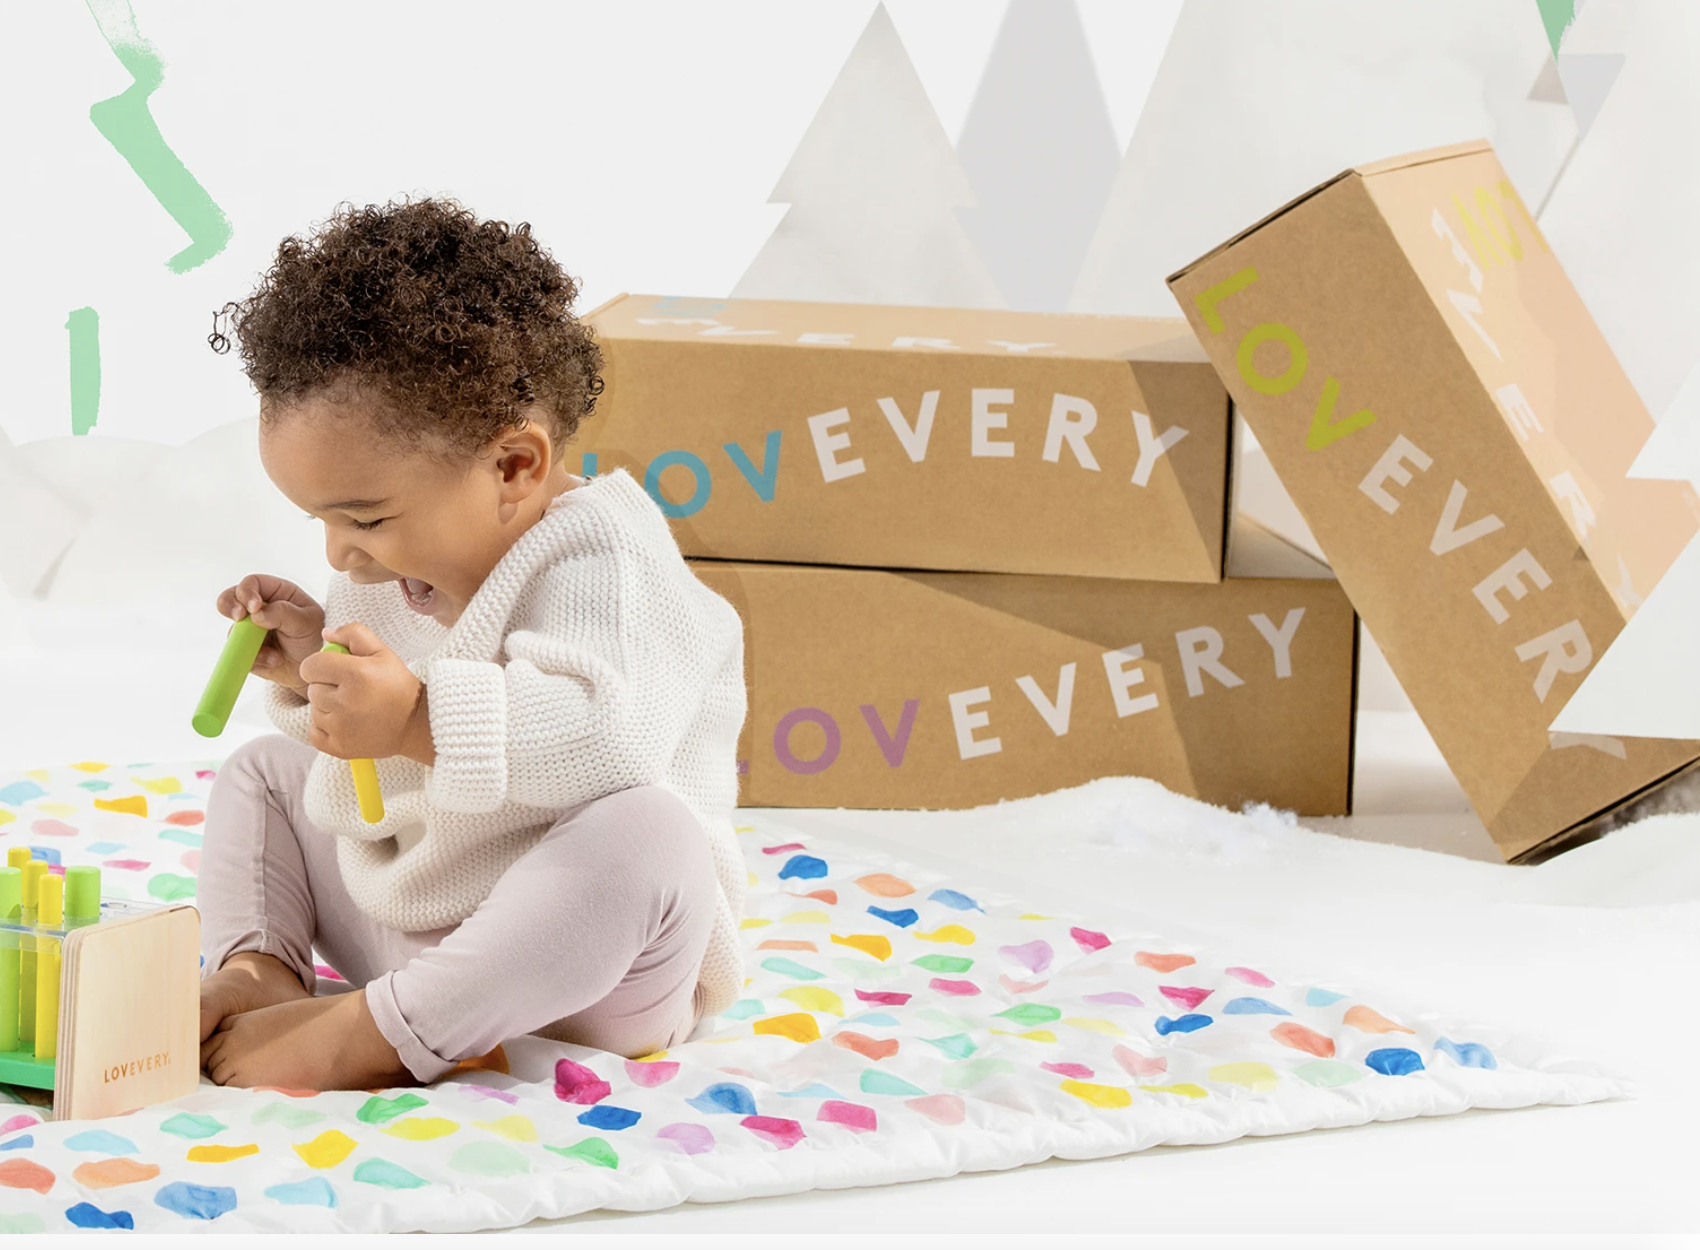 Lovevery Cyber Monday Deal – Save $25 Off The Organic Baby Quilt!